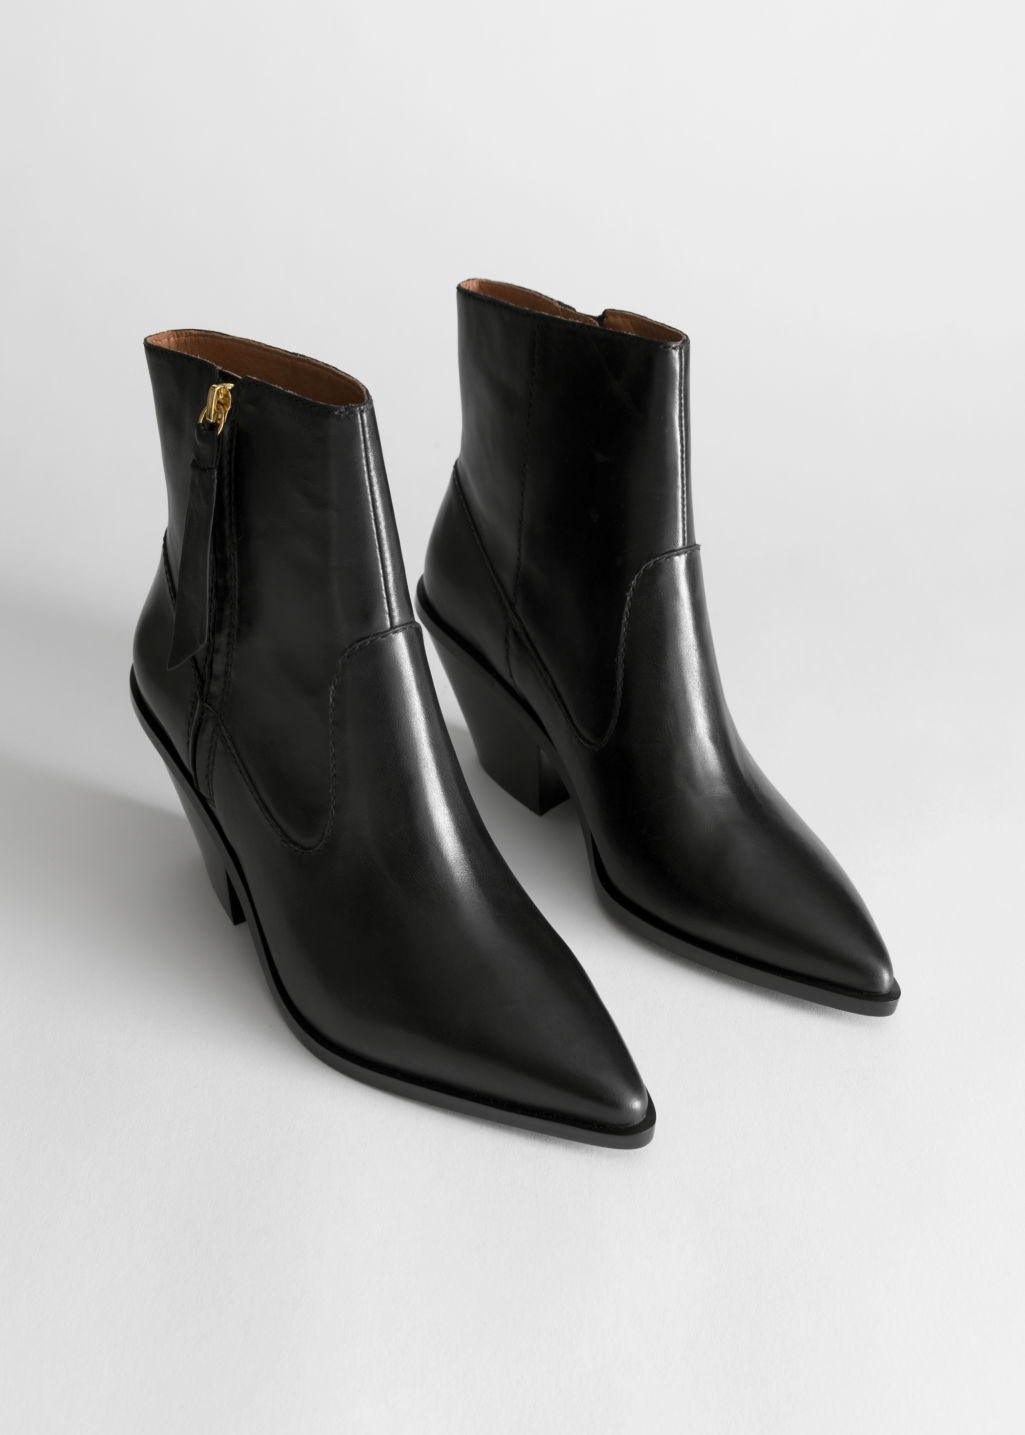 be41aafee56d Leather Cowboy Ankle Boots - Black - Ankleboots -   Other Stories